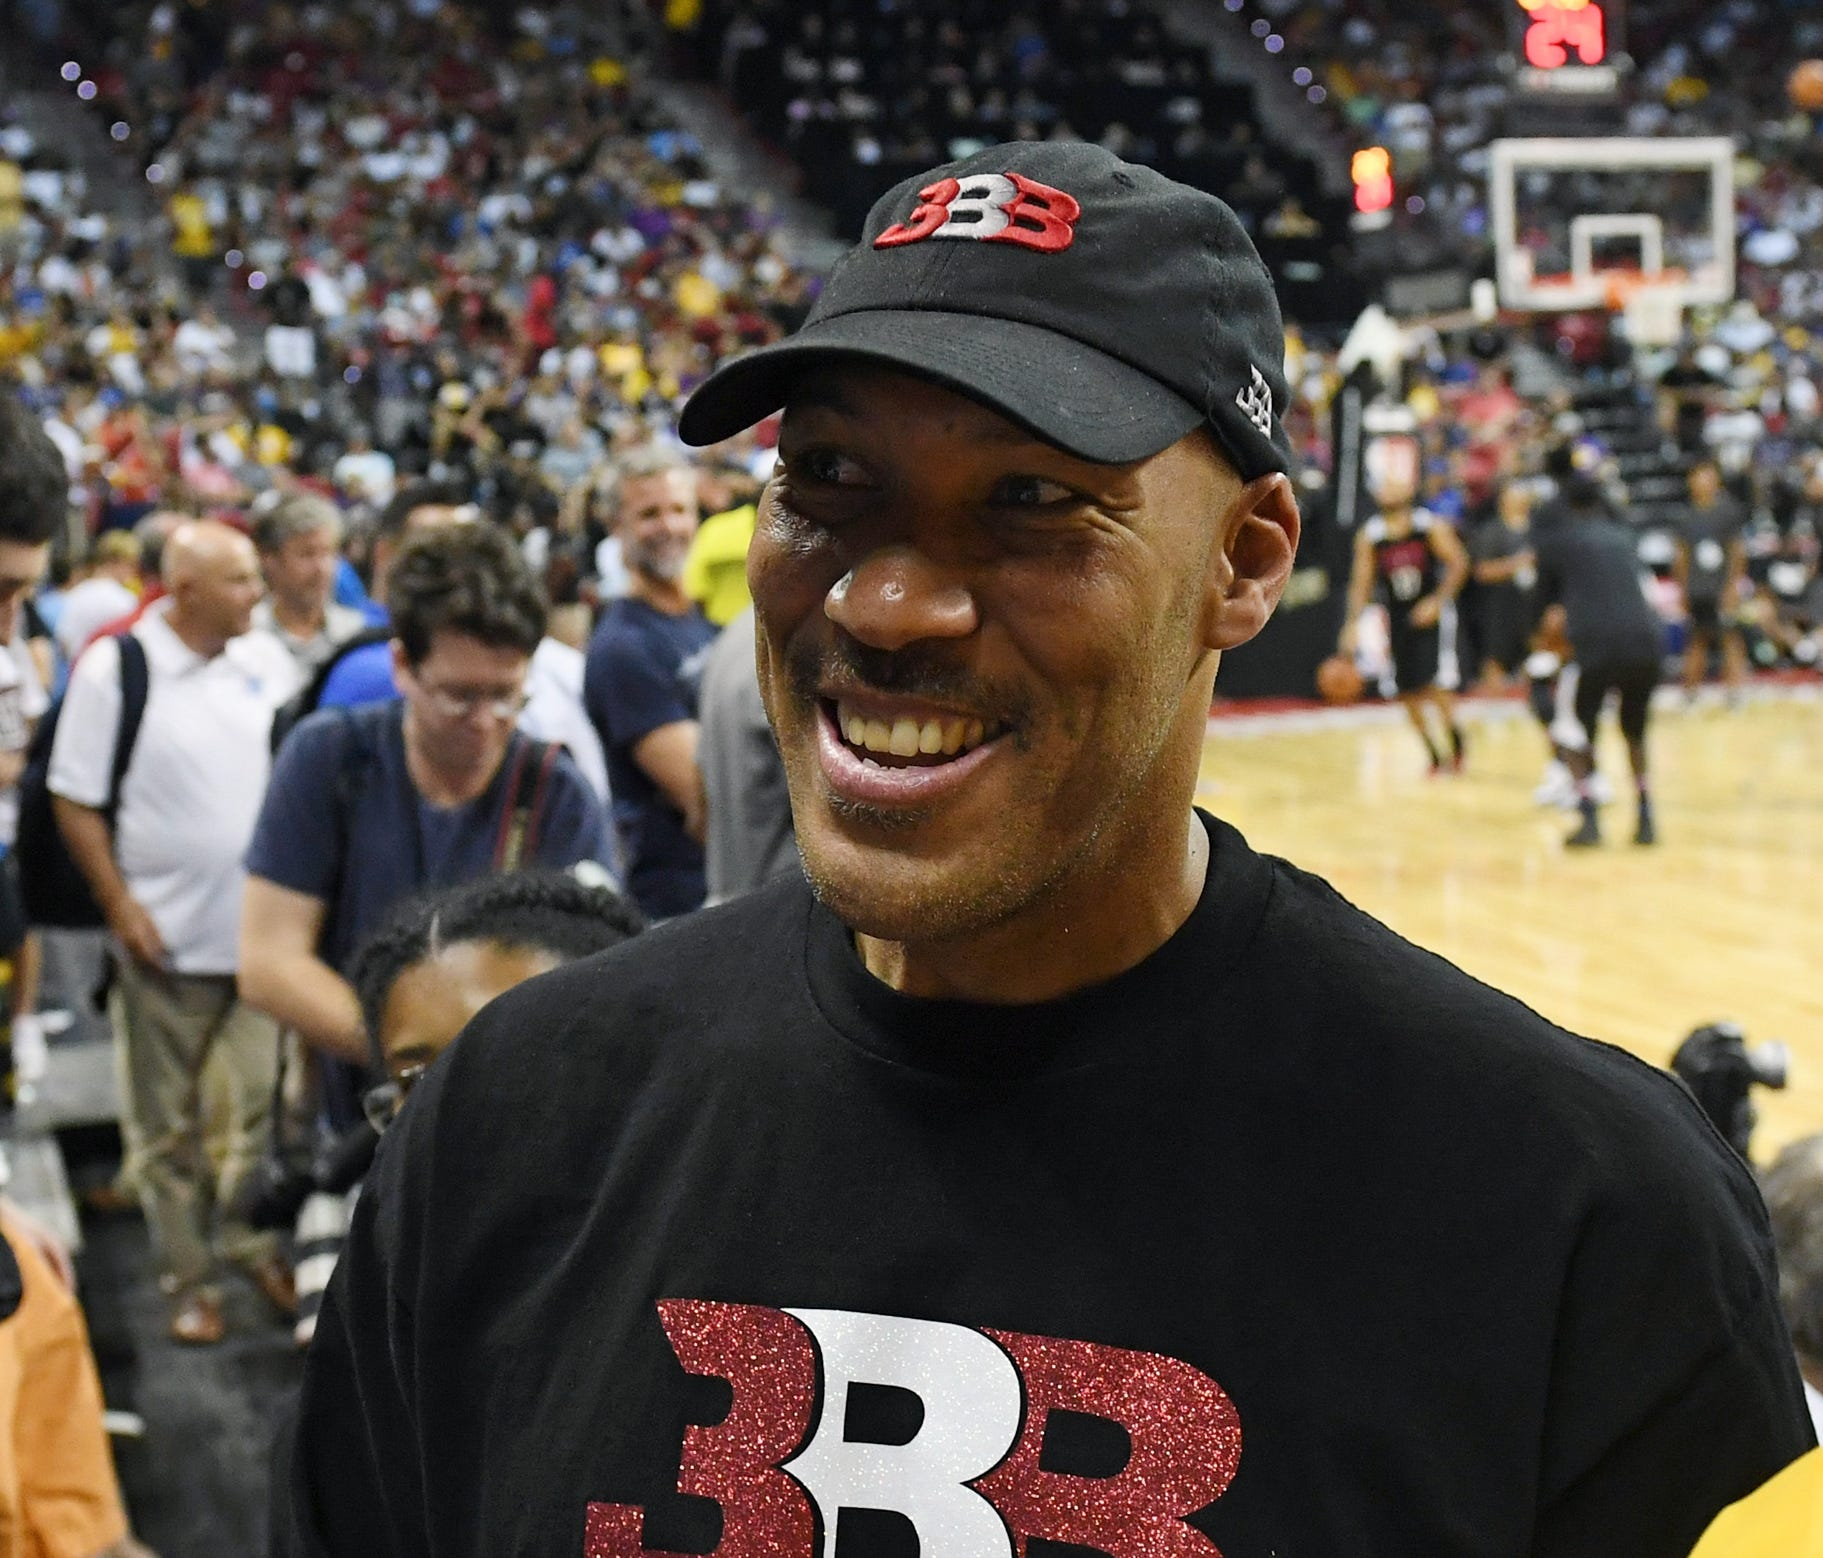 LaVar Ball's conflict with a female ref during an AAU tournament forced the referee group to cut ties with Adidas.